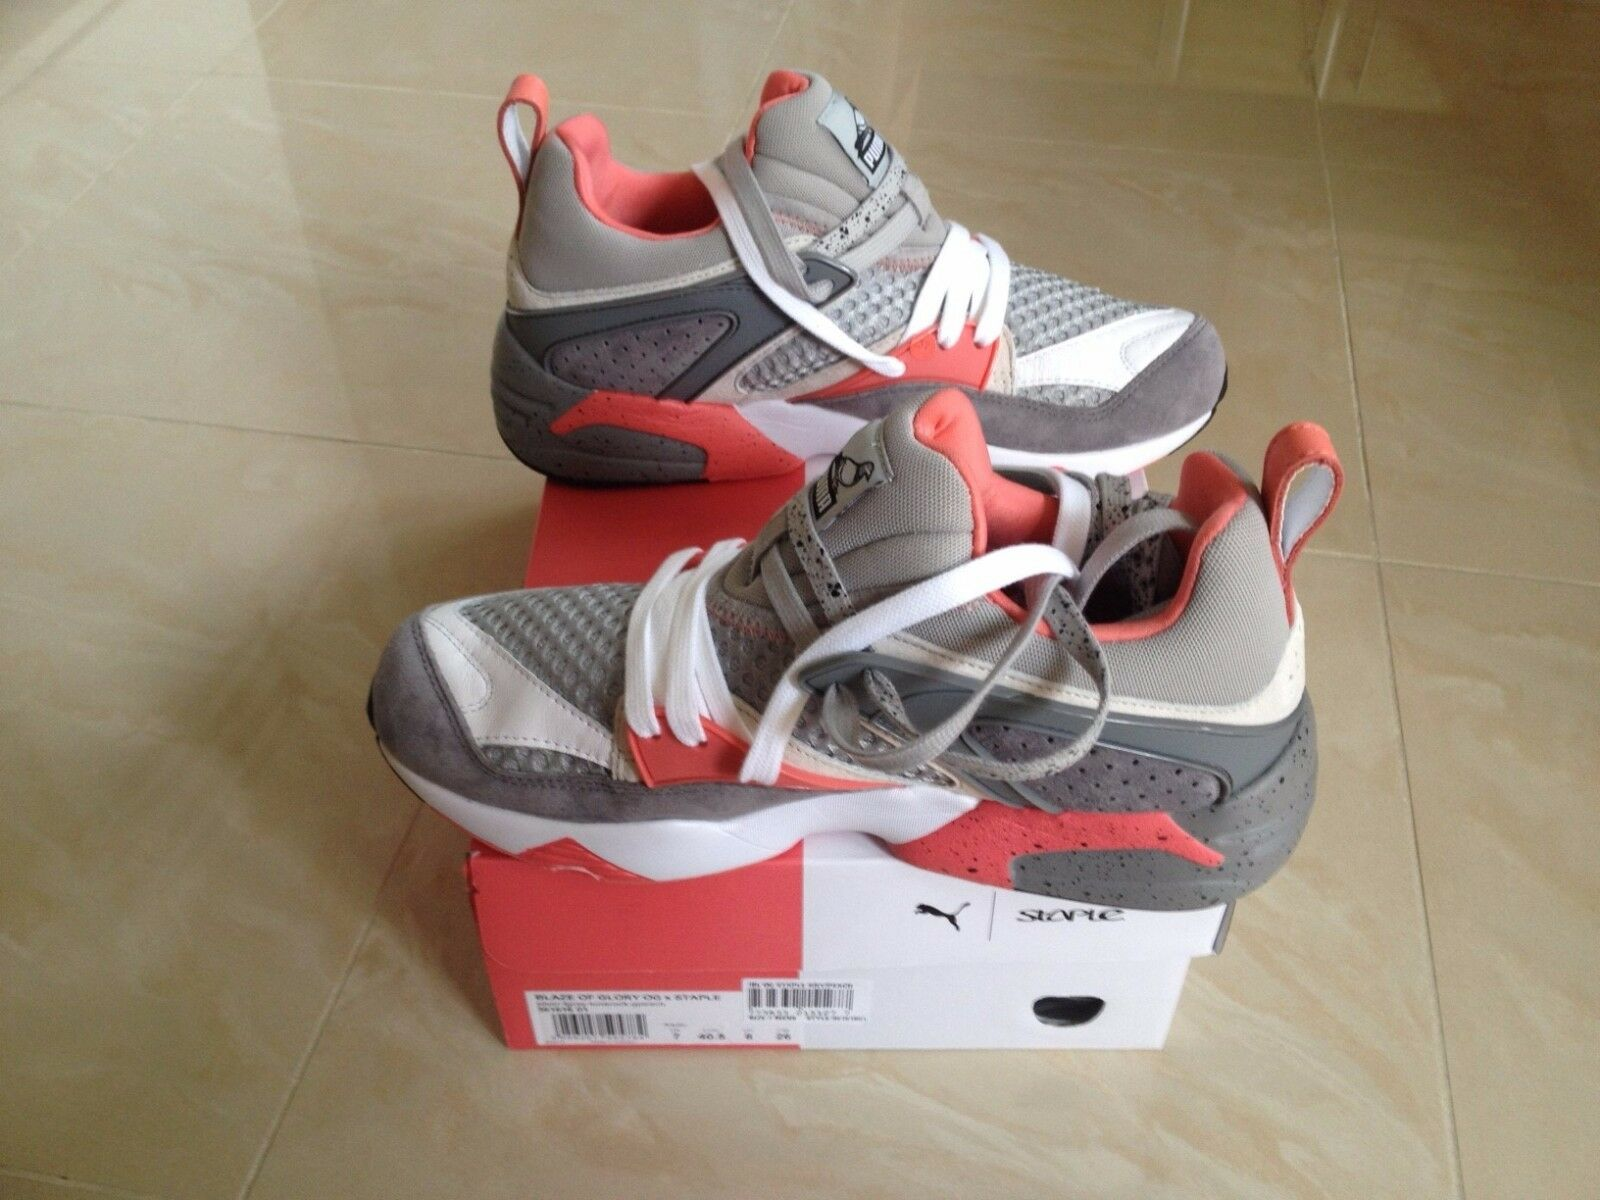 PUMA X STAPLE BLAZE OF OF OF GLORY OG NYC PIGEON SIZES UK 7 8 9 NEW 8d9044